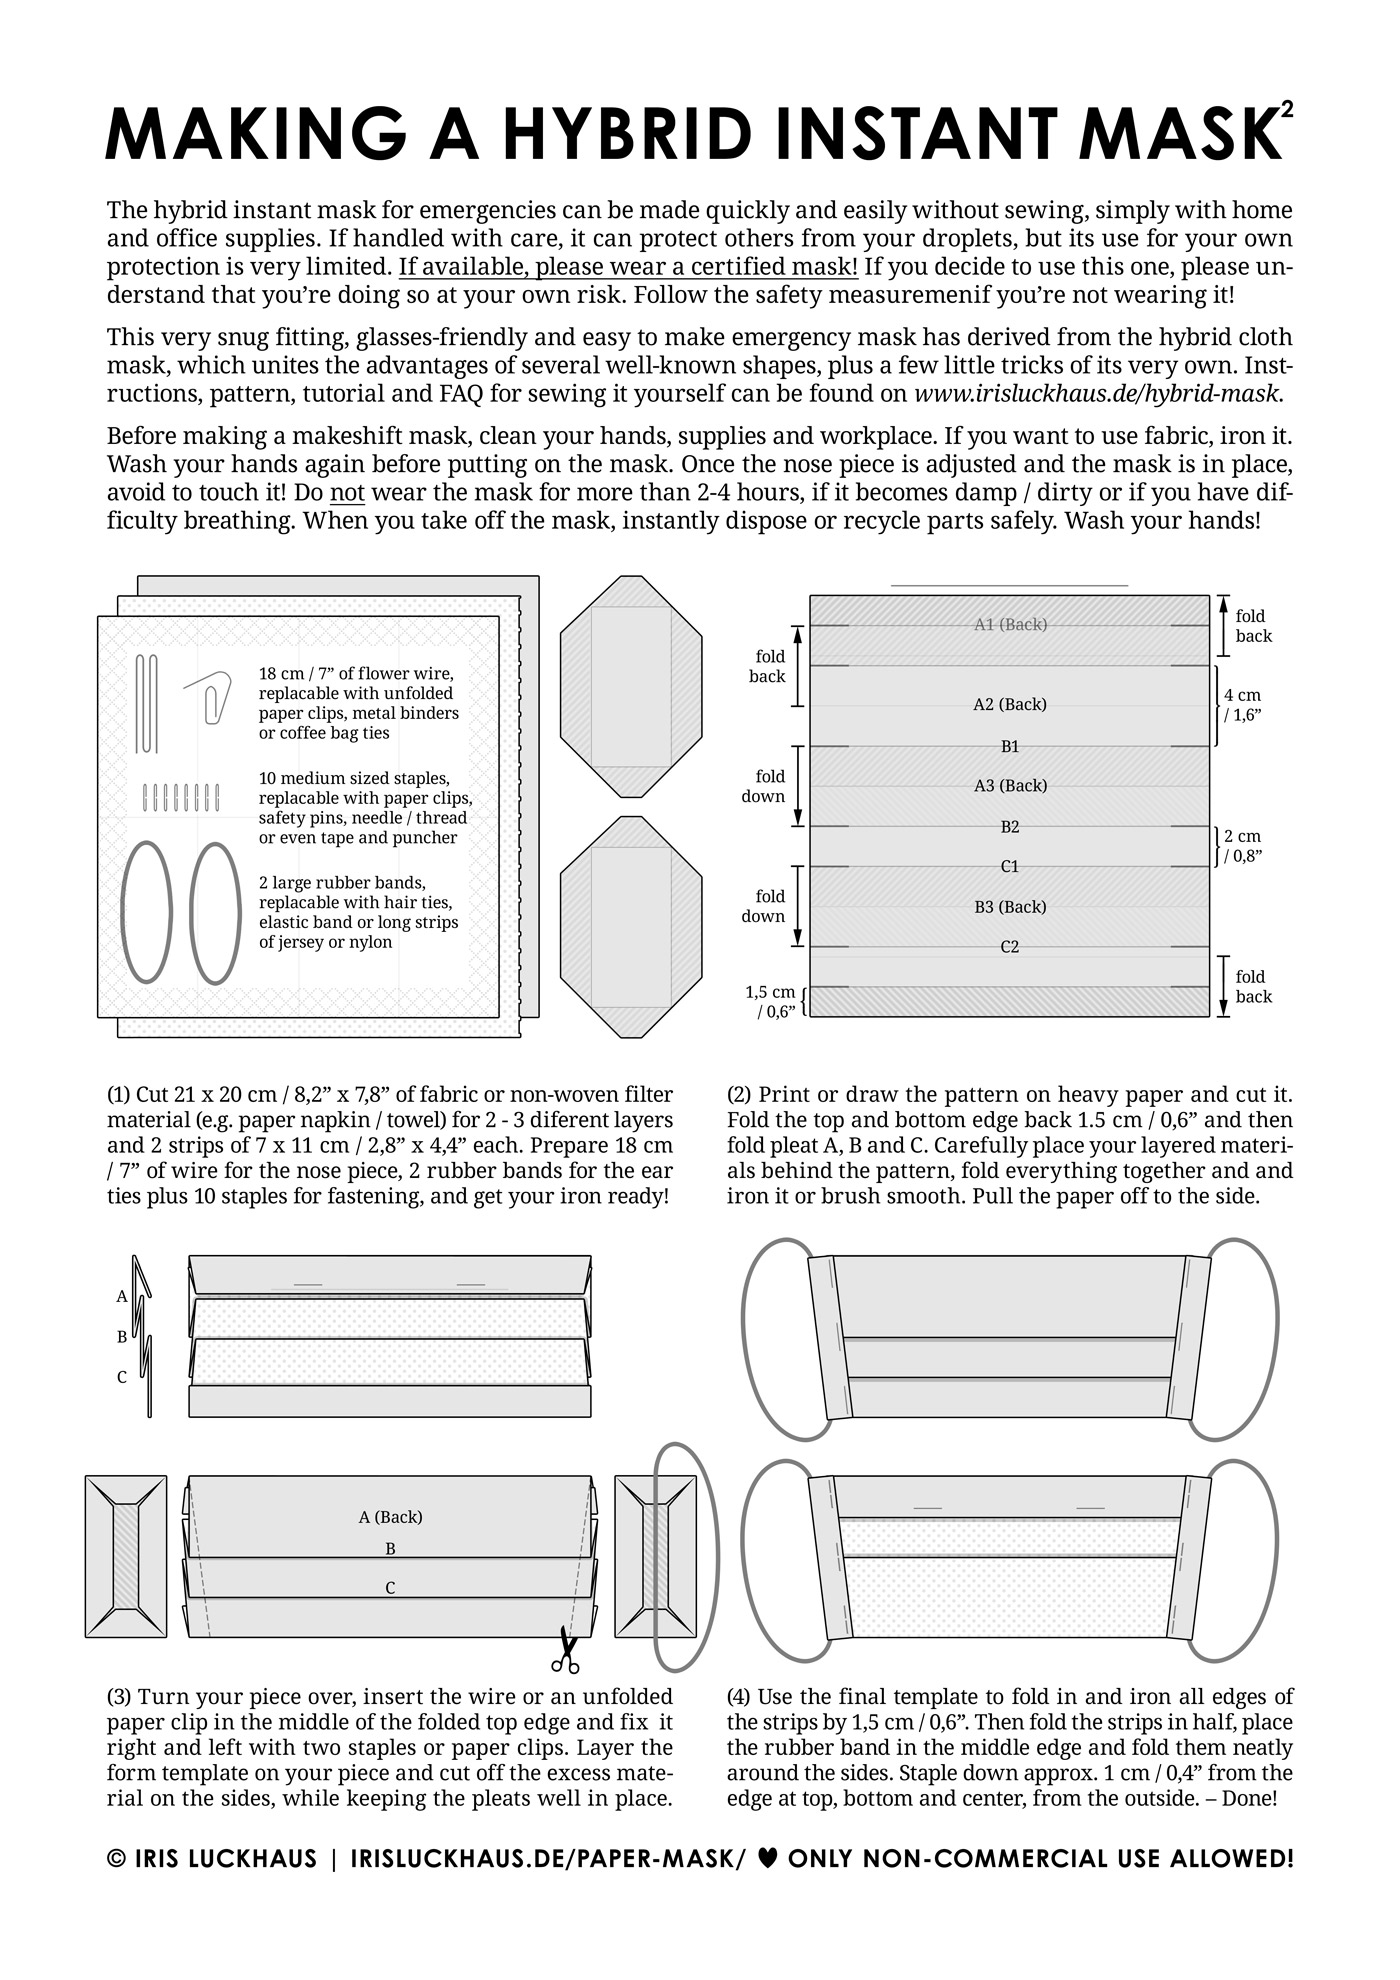 DIY Instructions, Pattern and Template for Making a makeshift, emergency, disposable, instant, one-way no-Sew Hybrid Face Mask from paper napkins, towels, handkerchiefs or filter materials and staples, by Iris Luckhaus